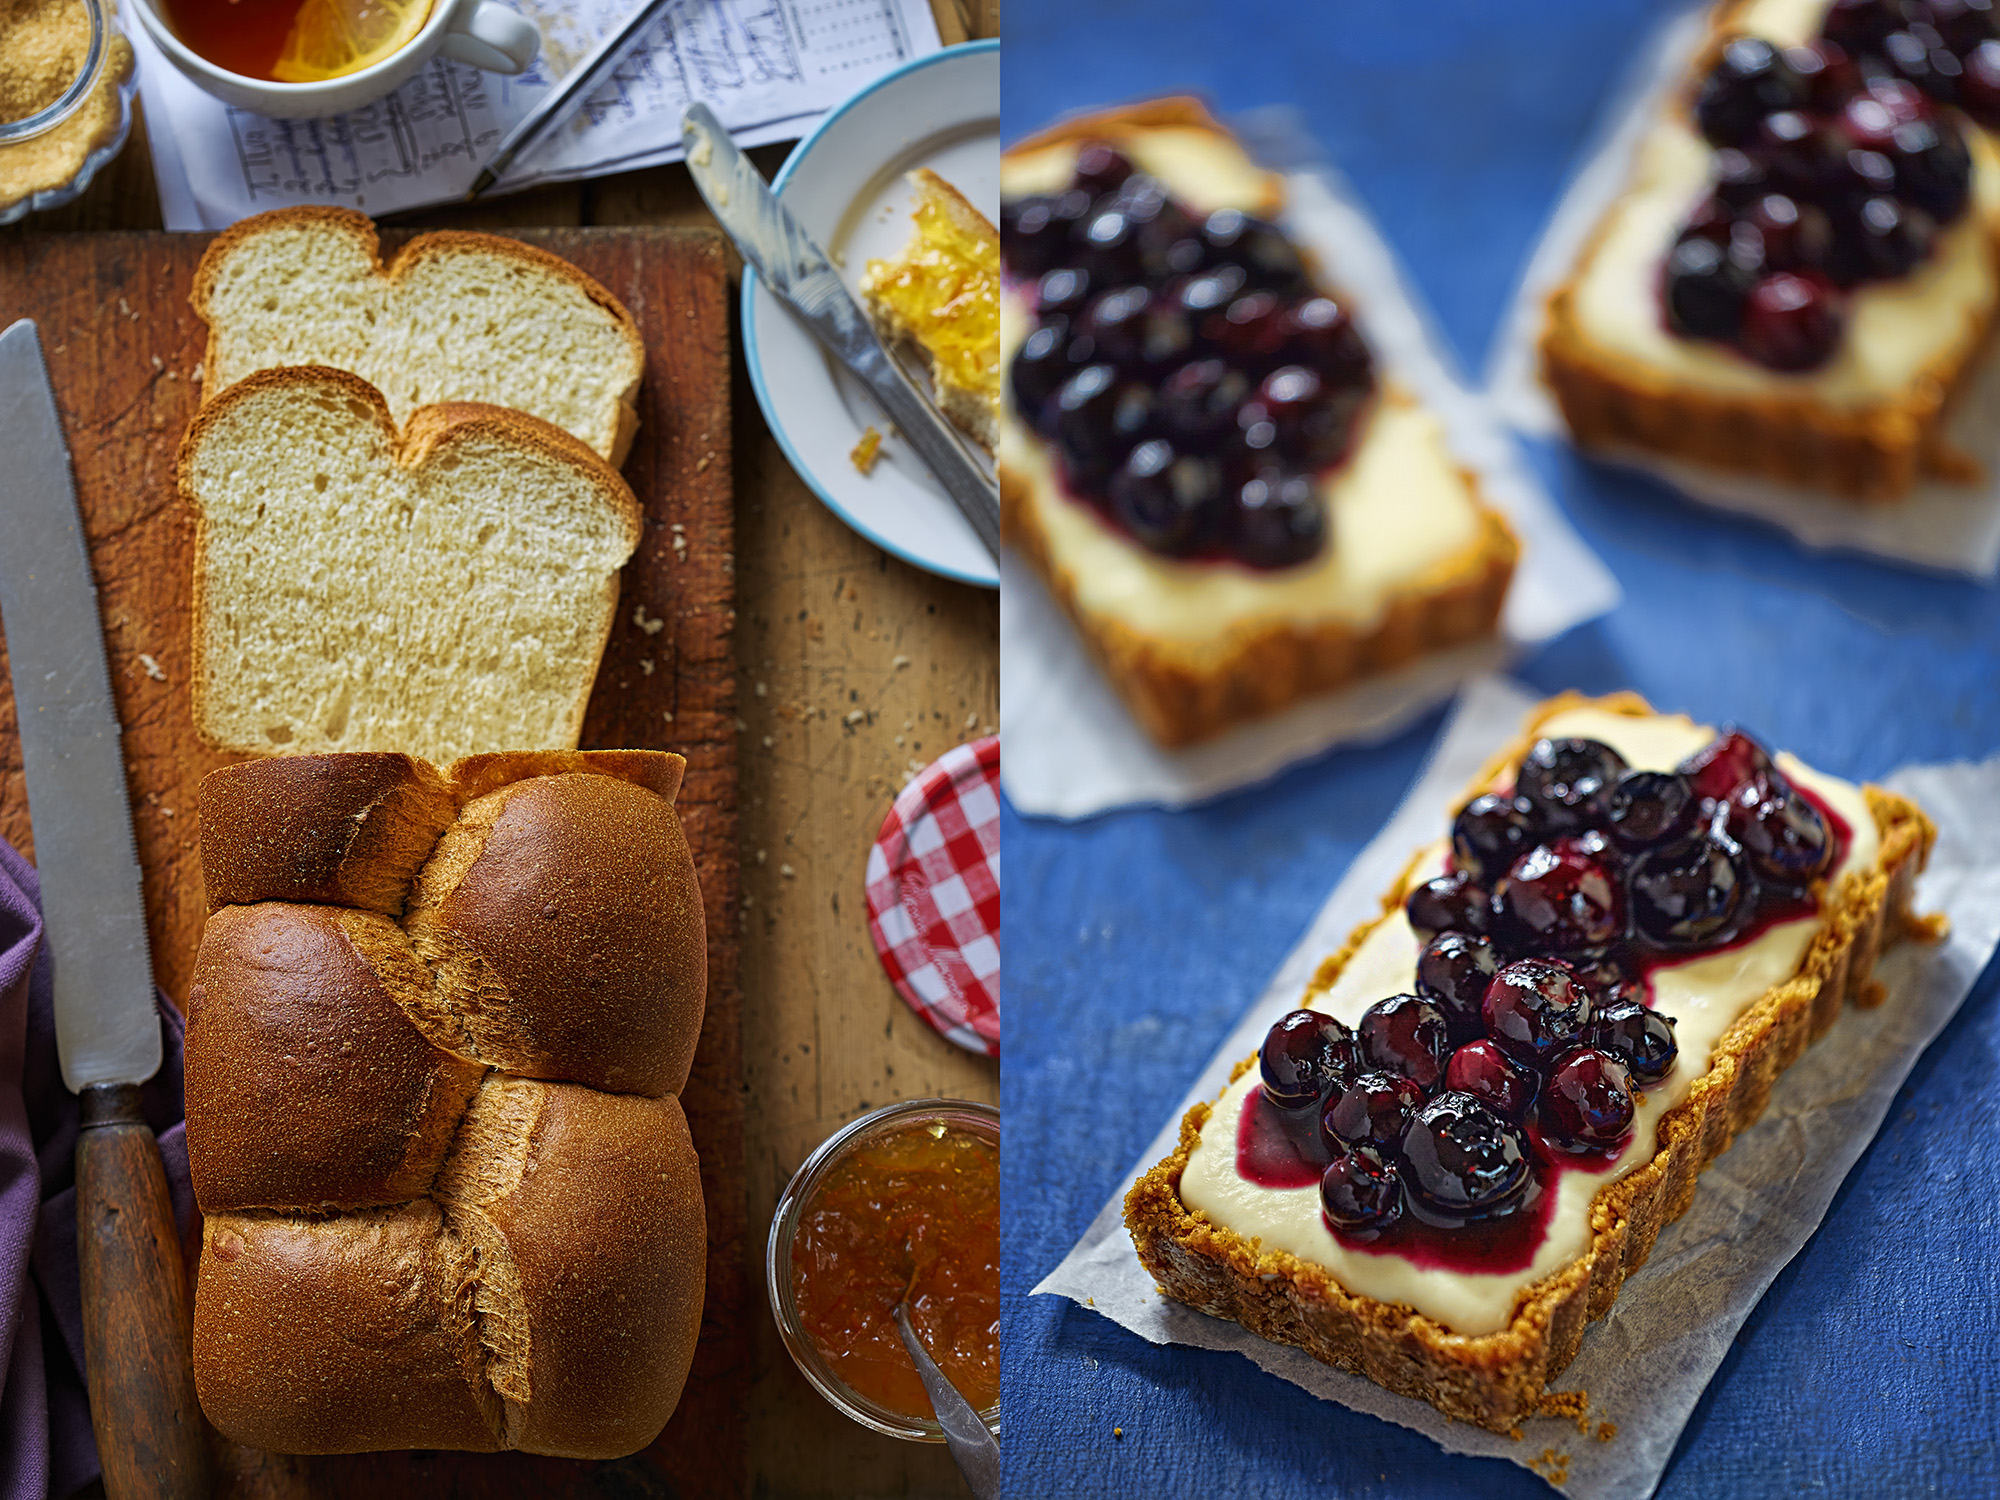 Sweet bread and blueberry tarts